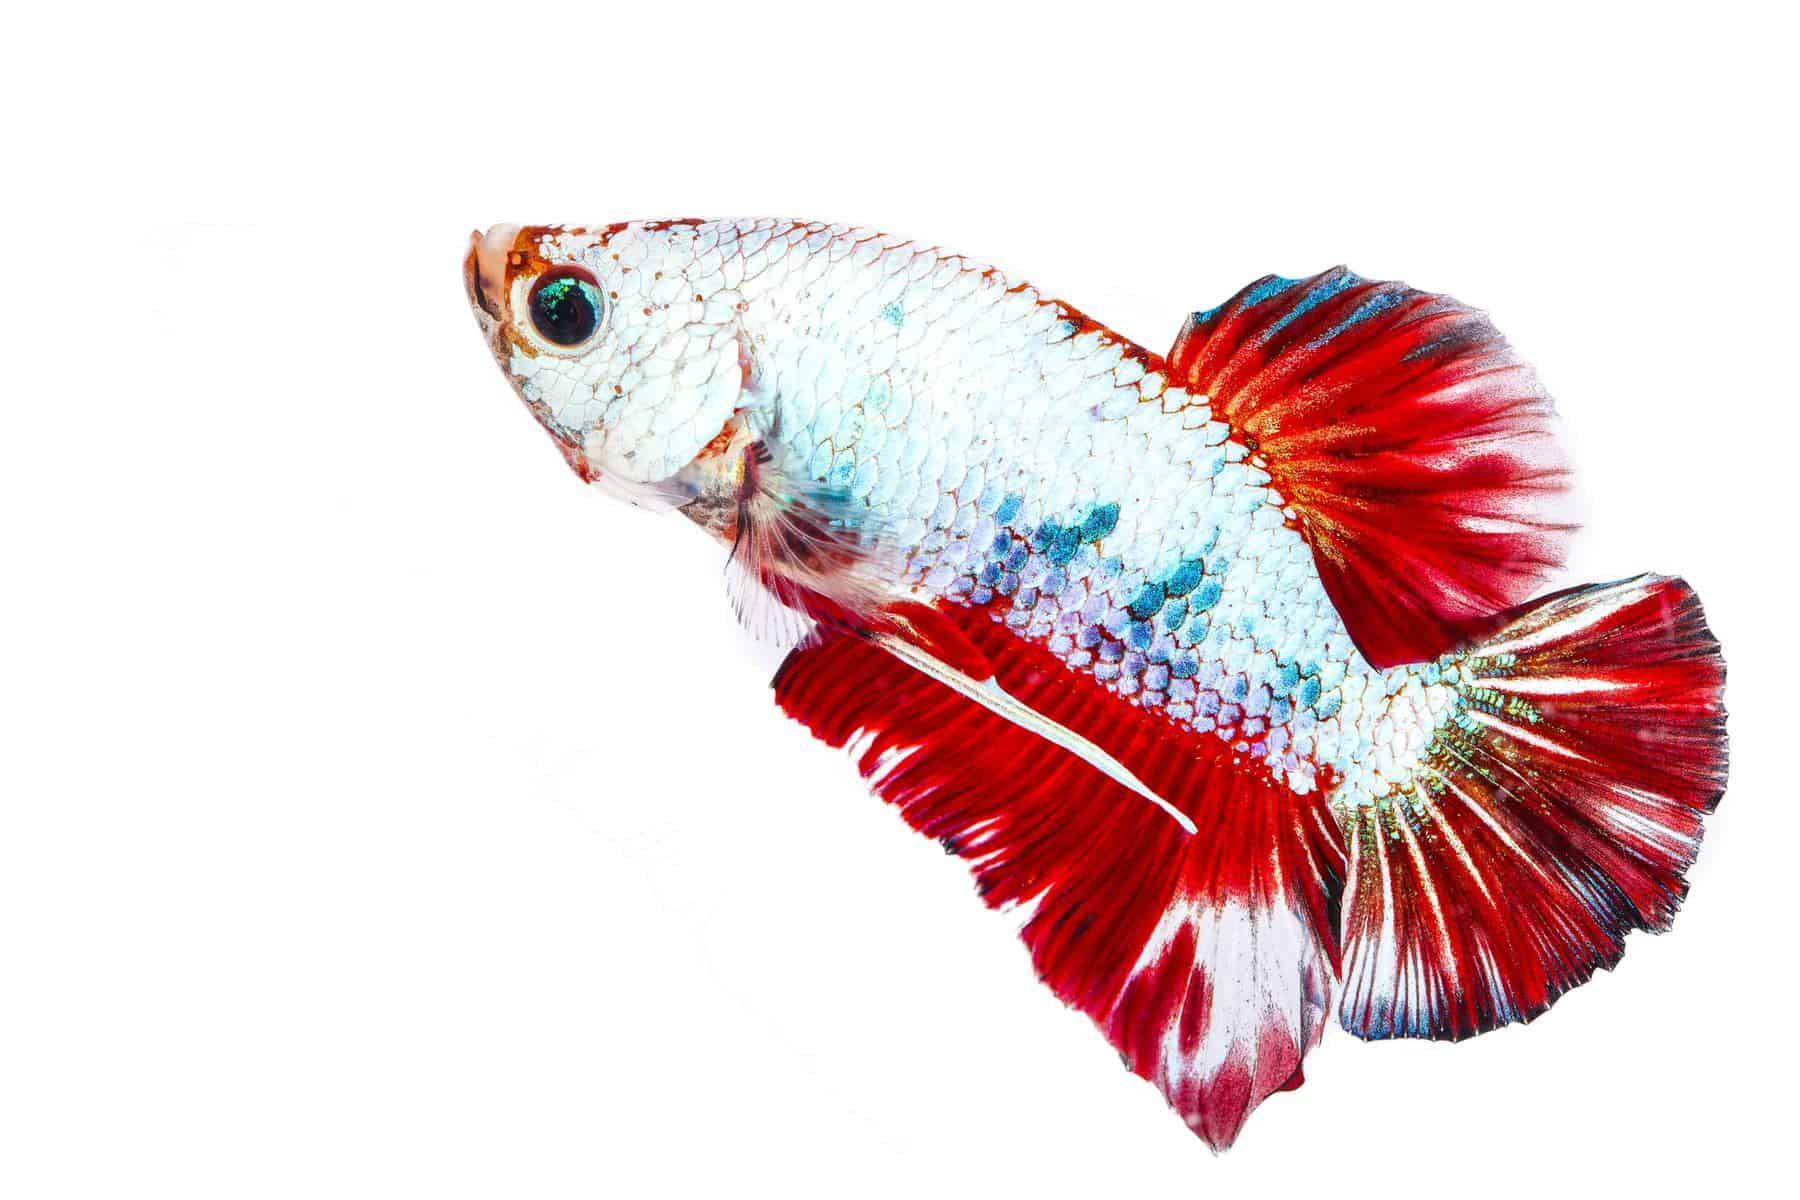 betta fish with septicemia